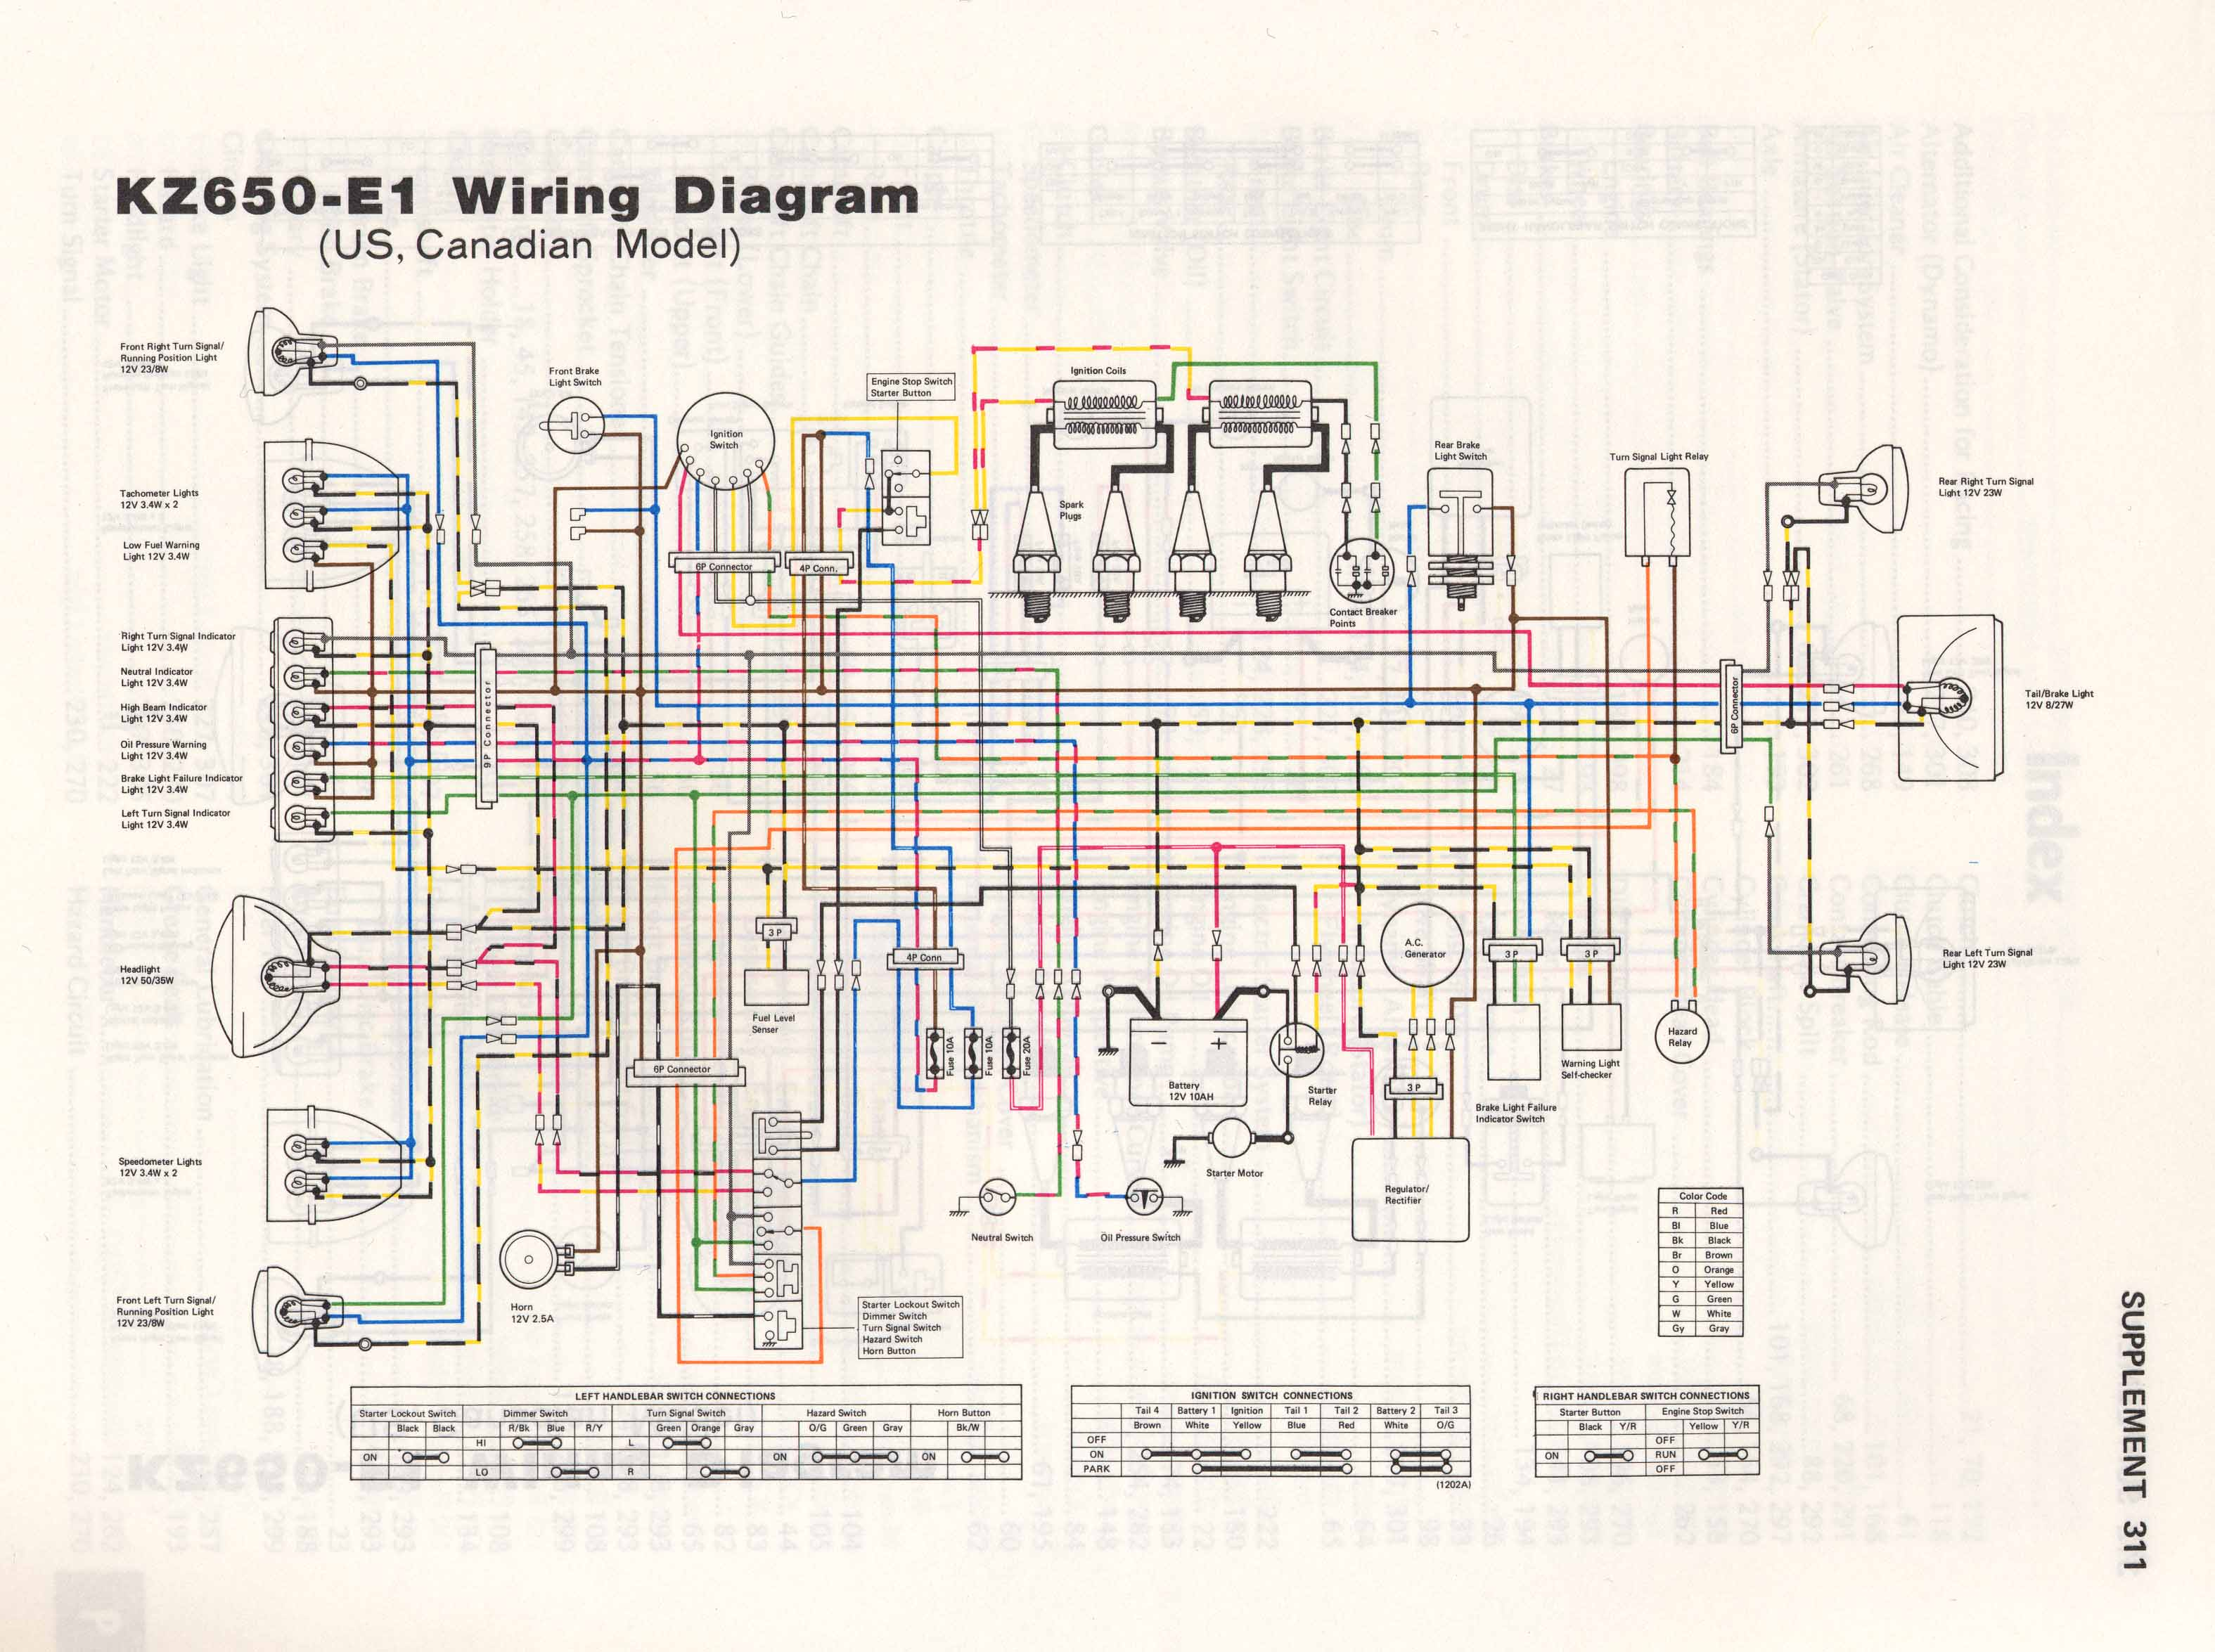 KZ650 E1 kz650 info wiring diagrams 1980 kz650 wiring diagram at readyjetset.co